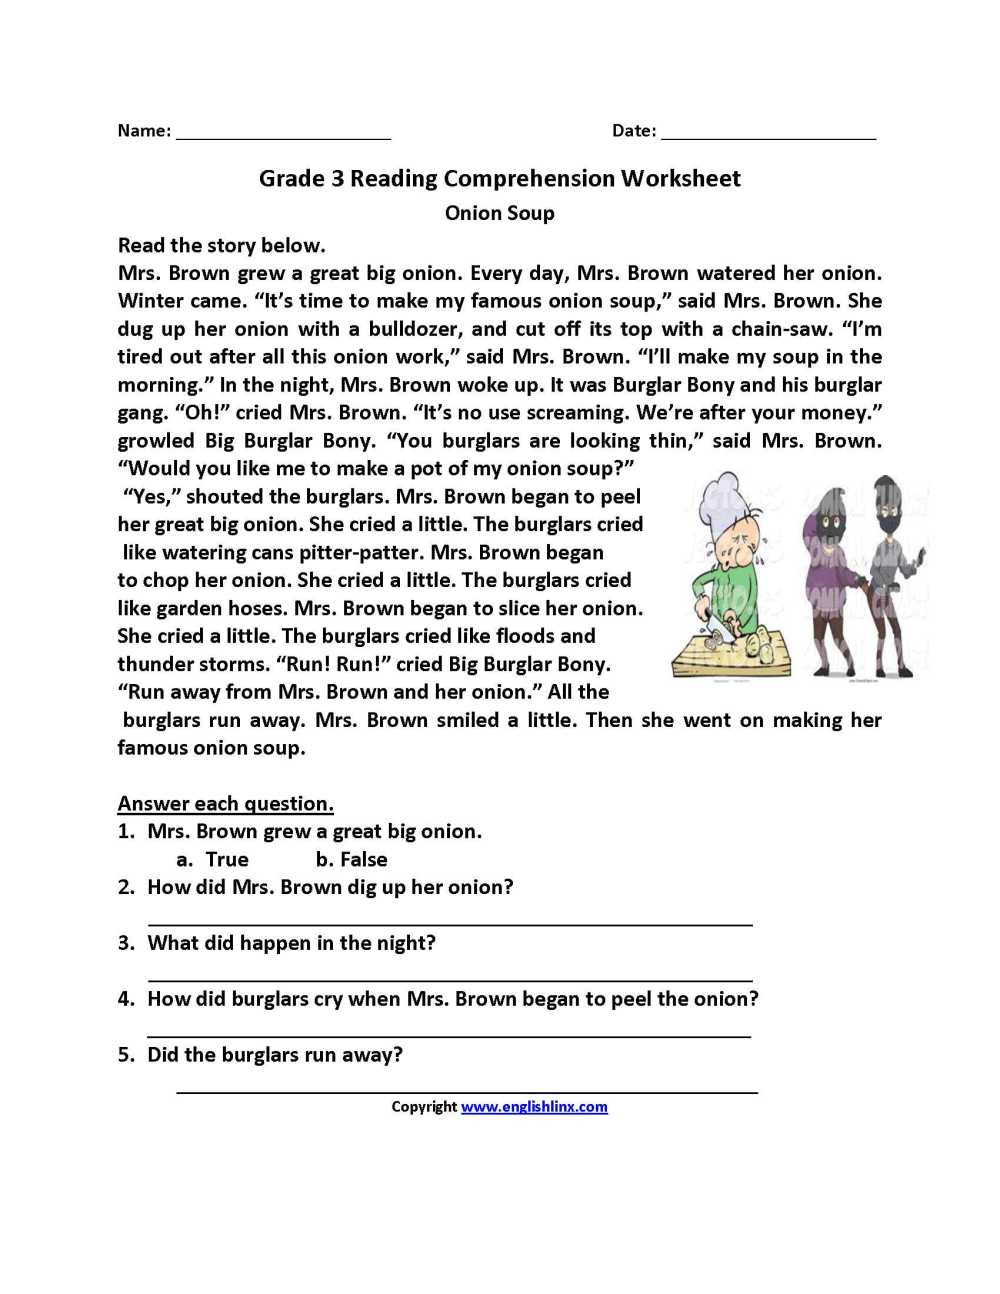 medium resolution of Drawing Conclusions Worksheets 3rd Grade   Printable Worksheets and  Activities for Teachers